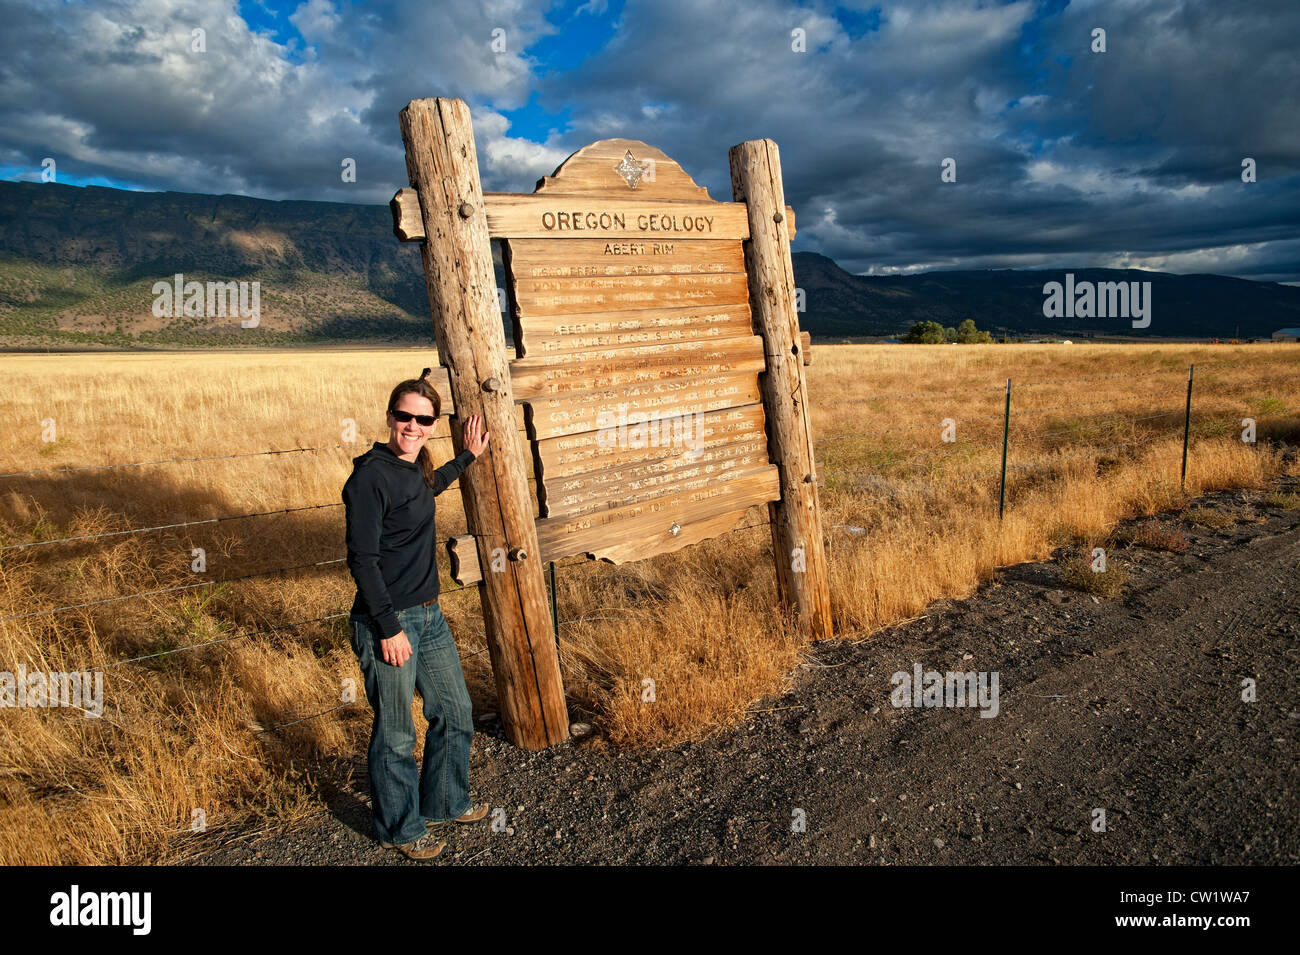 Woman standing at Oregon Geology roadside information sign which describes a geological fault line called Abert - Stock Image